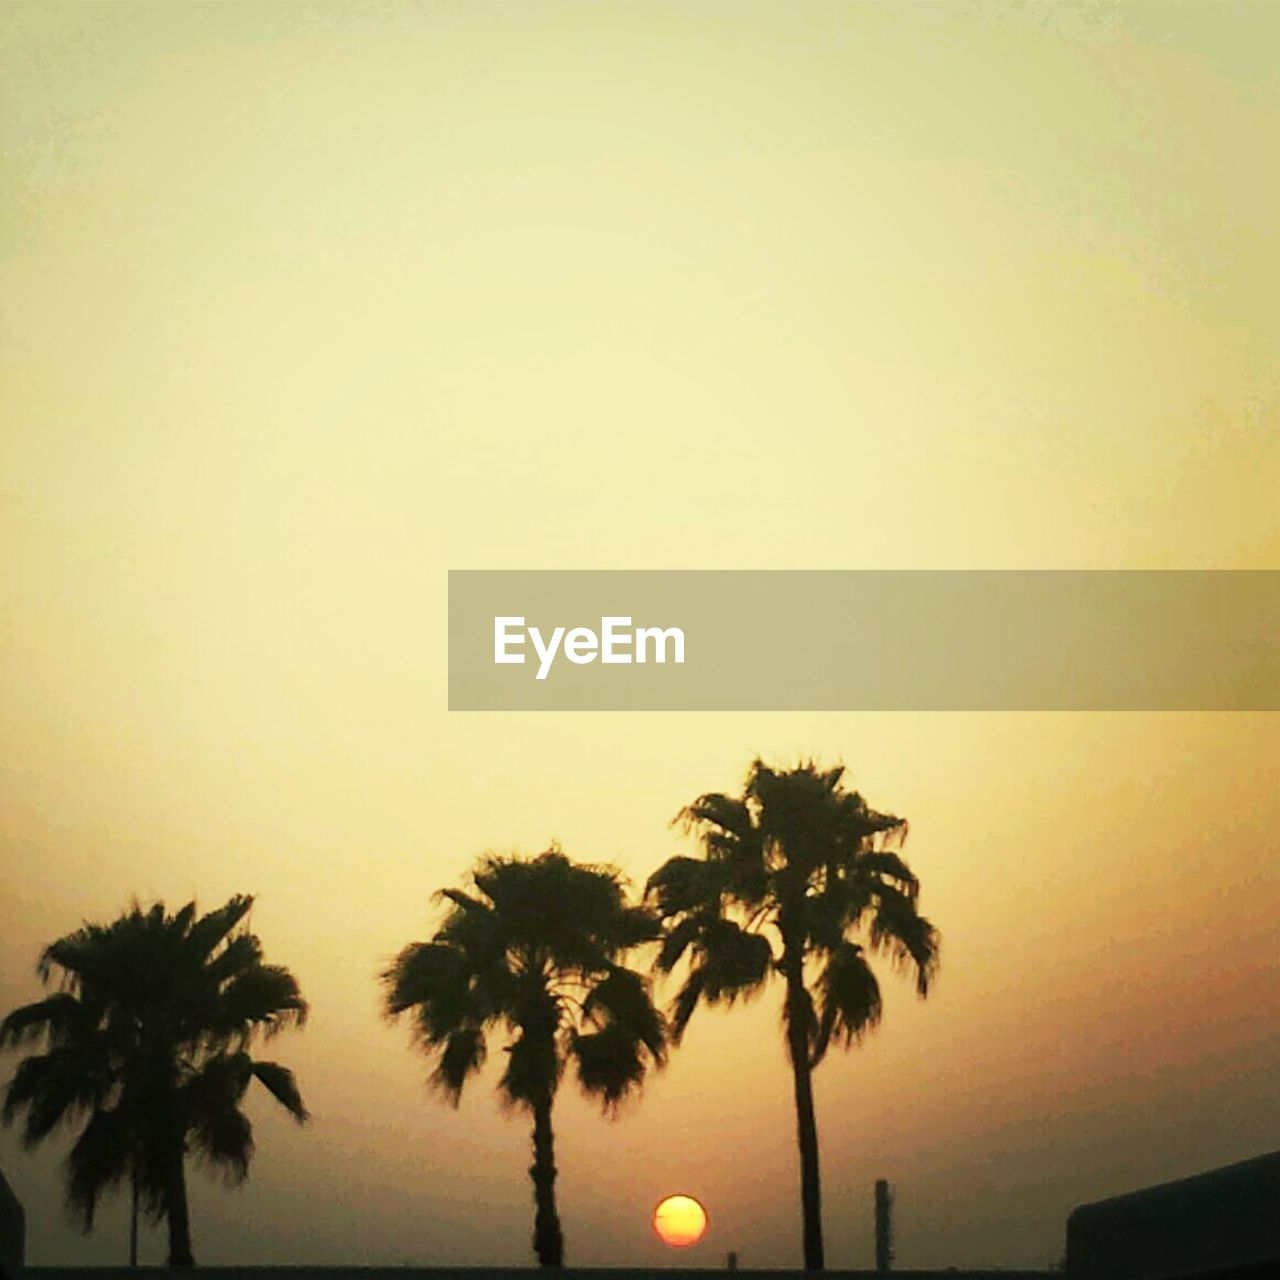 tree, palm tree, silhouette, sunset, clear sky, beauty in nature, outdoors, nature, no people, scenics, sky, growth, day